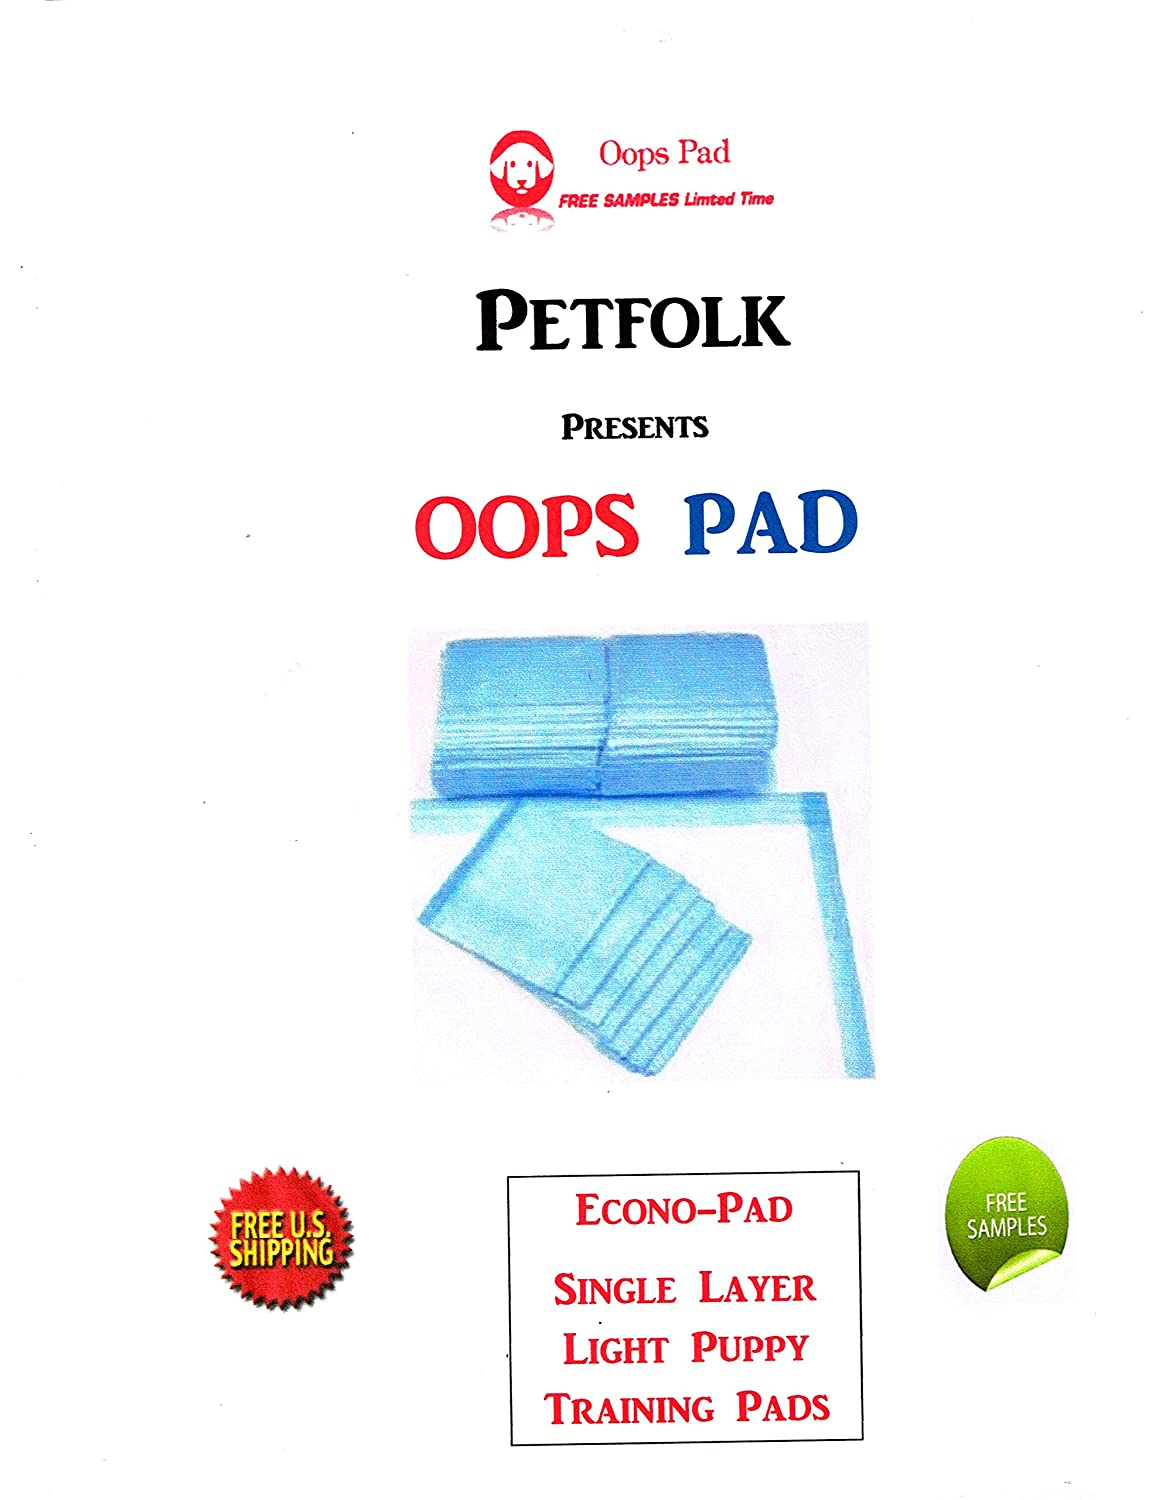 300ct 17x24 3-Layer Lightweight Economy Opps Pads for Dogs up to 10lbs